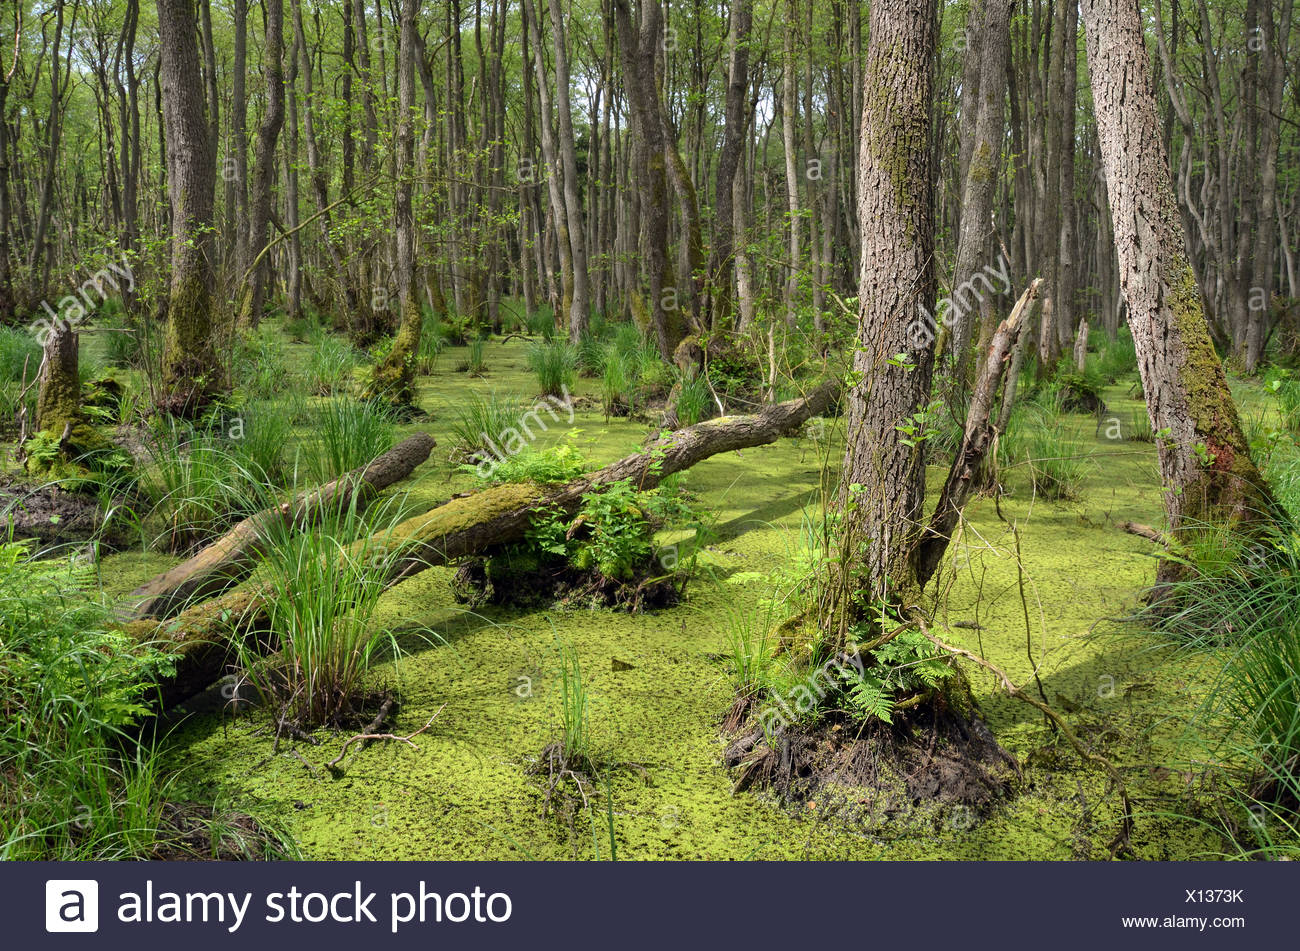 Swamp with a forest of Alder trees (Alnus glutinosa), Western Pomerania Lagoon Area National Park, Darss, Baltic Coast - Stock Image